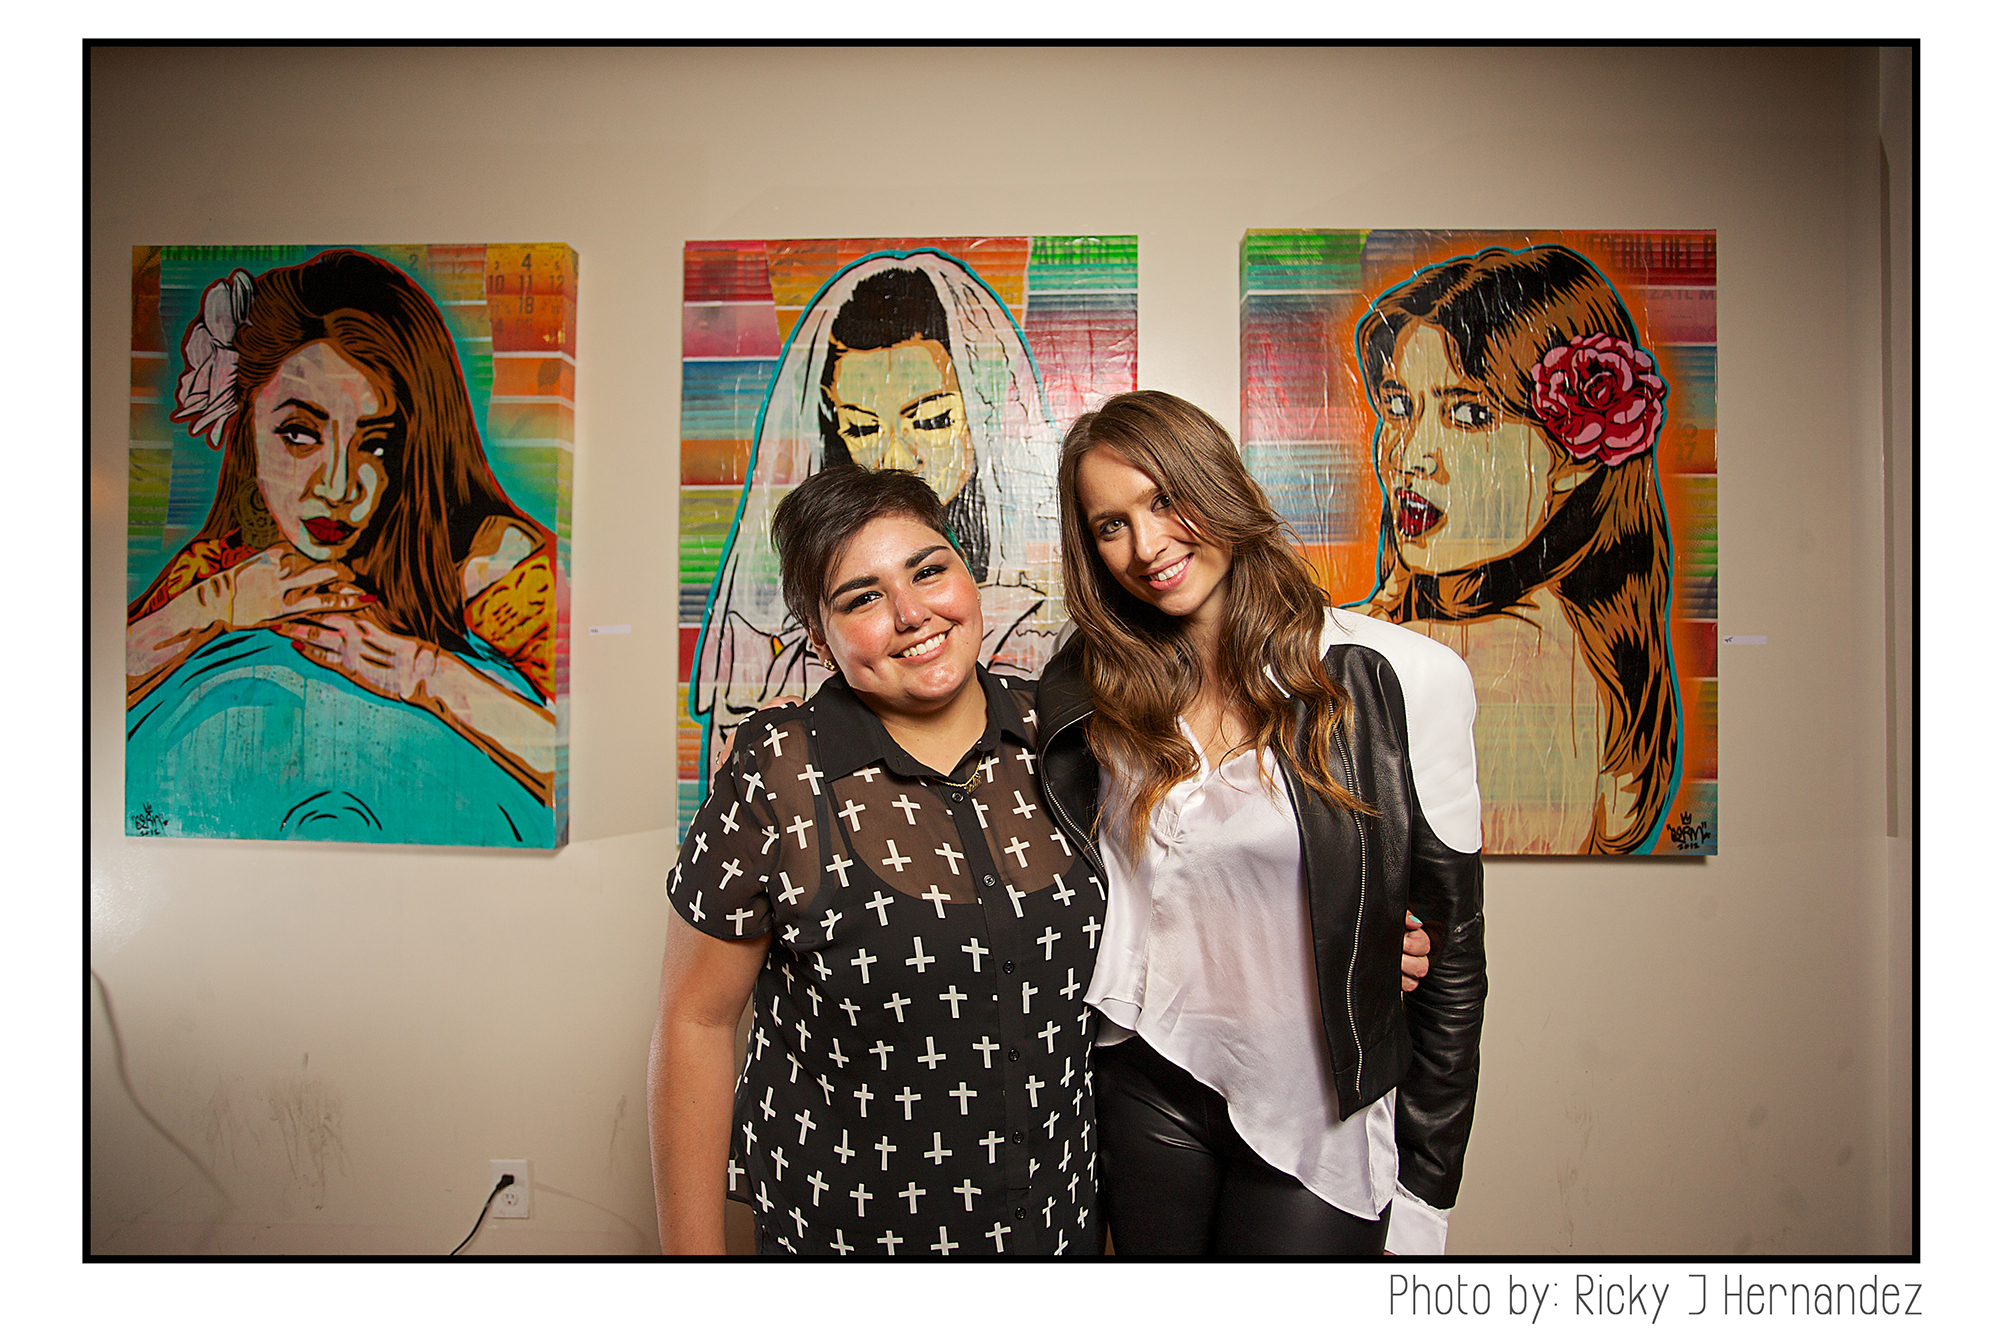 Ricky-J-Hernandez-photography-Oh-poop-I-have-Lupus-art-show-for-Delia-sweet-tooth-in-Privy-studio-Los-Angeles-CA-071